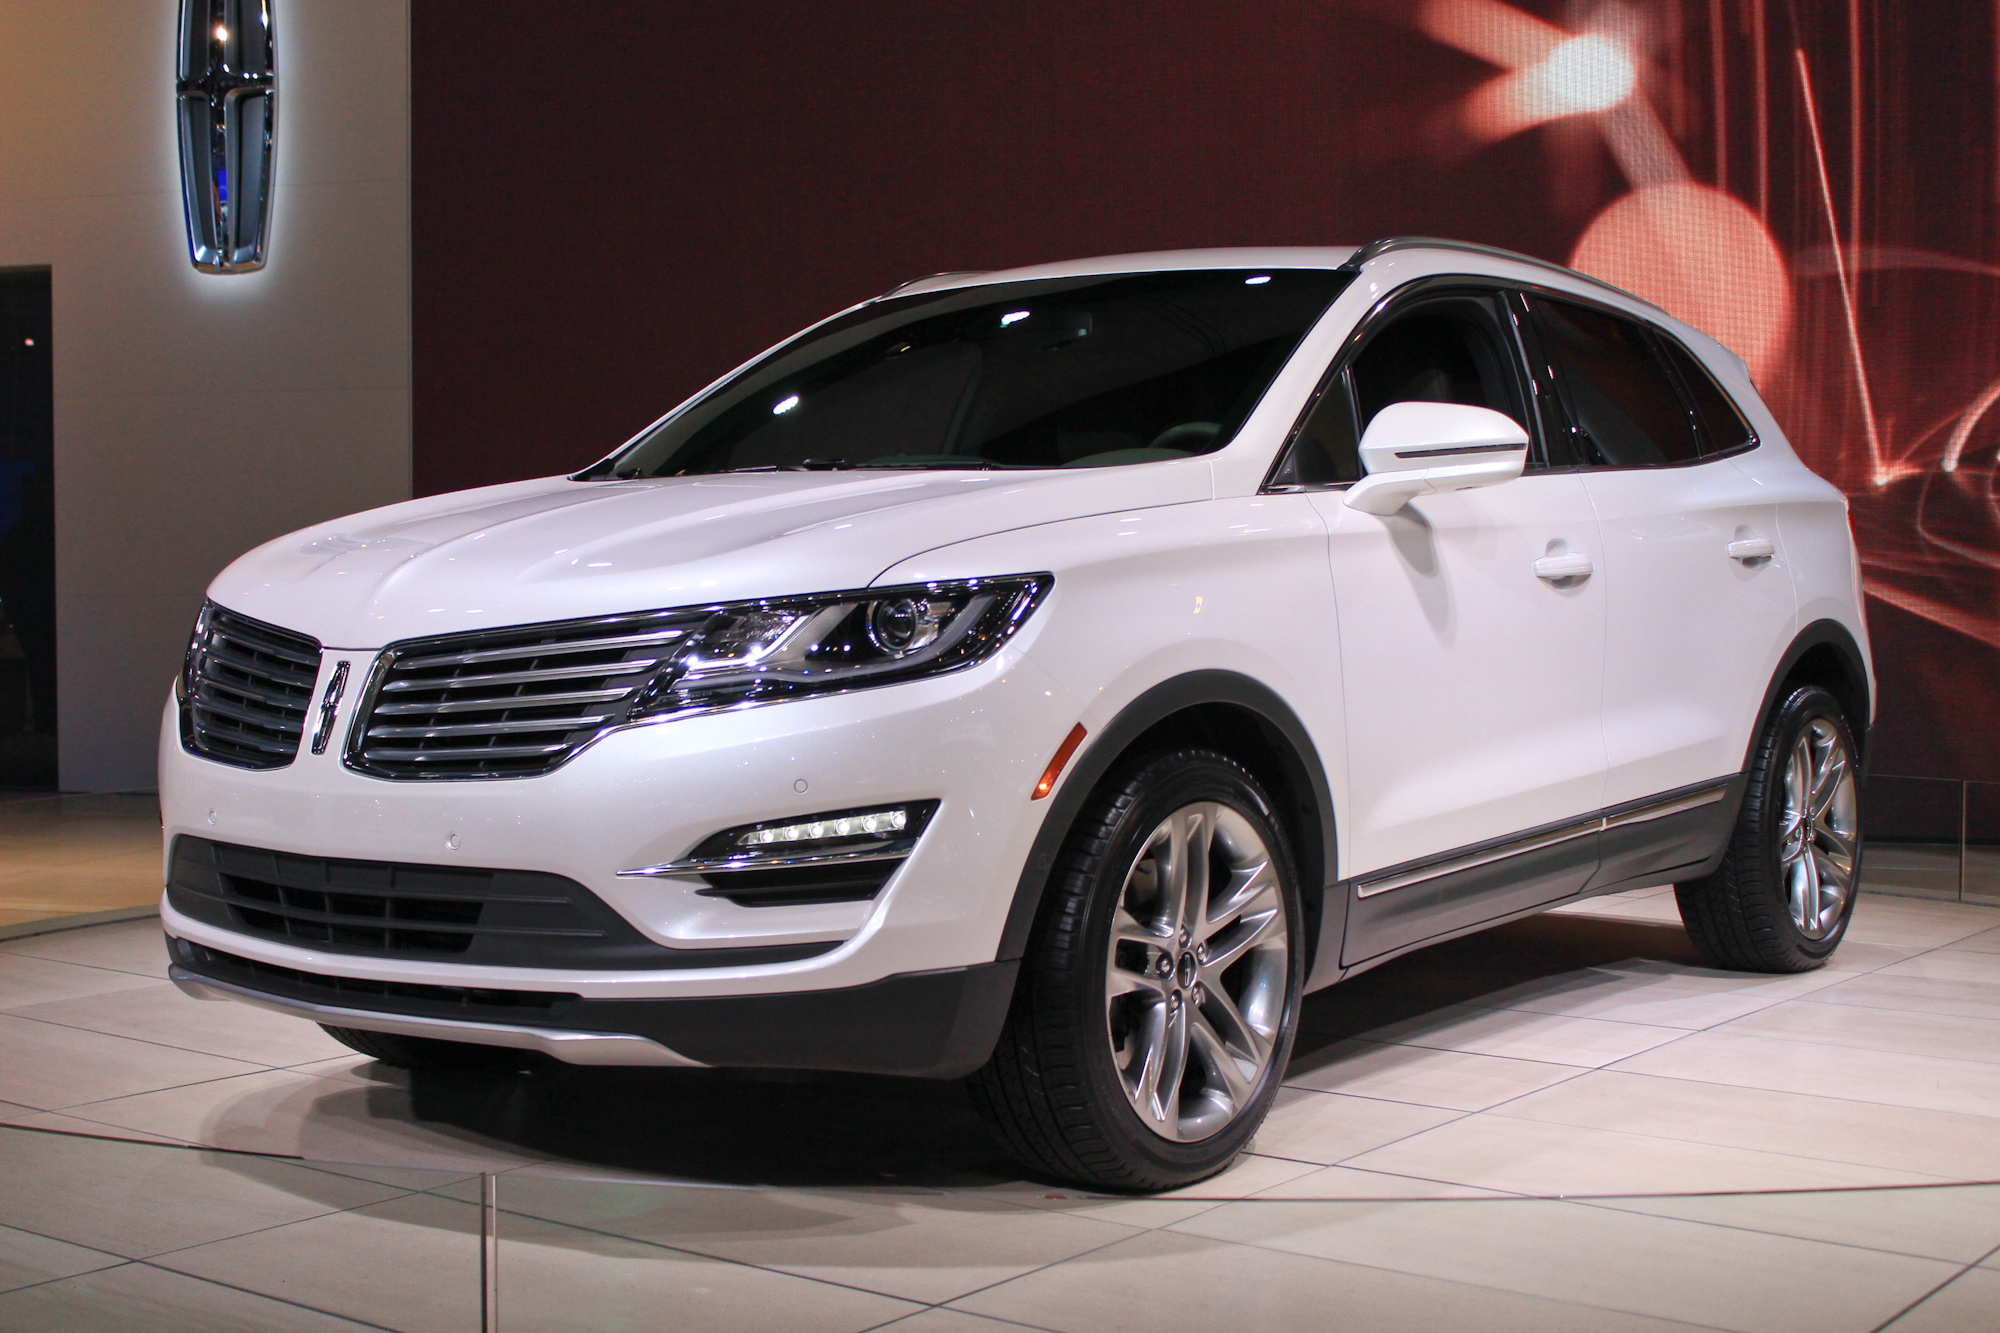 2015 Lincoln MKC Compact Crossover Pioneers New EcoBoost ...